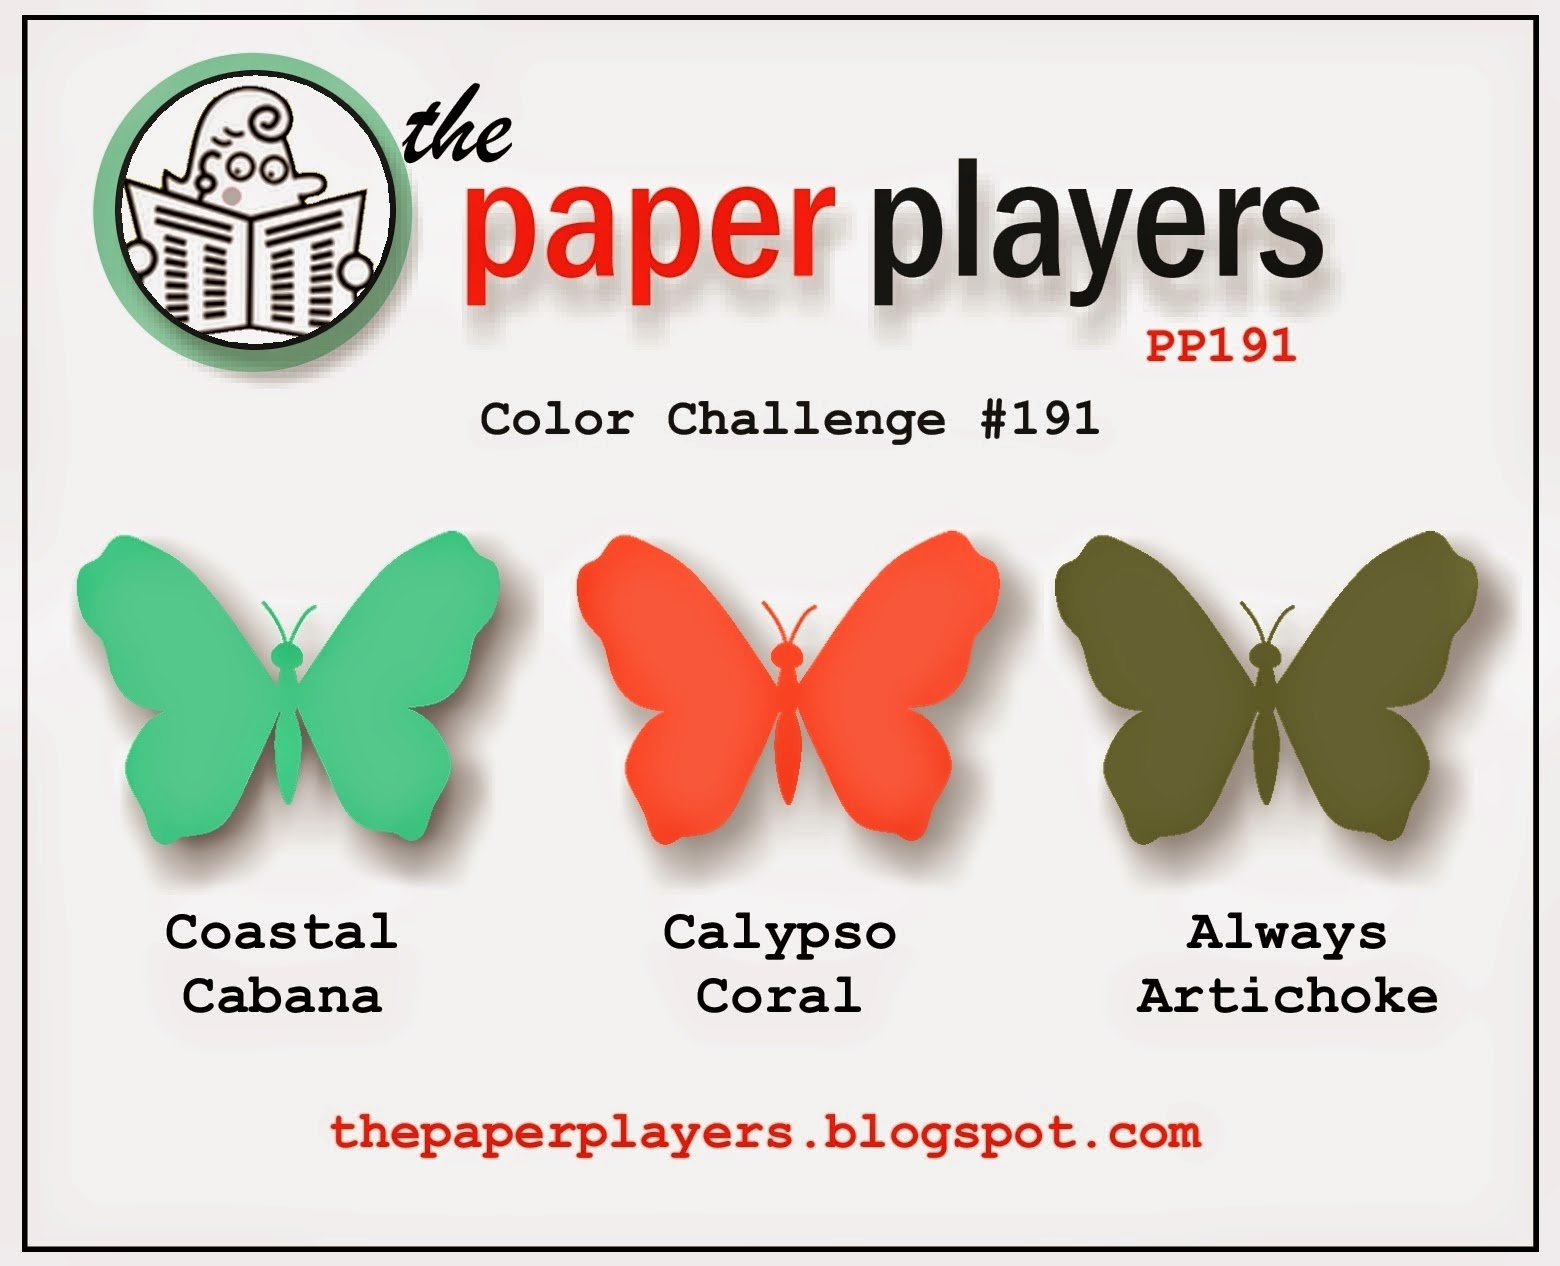 http://thepaperplayers.blogspot.ca/2014/04/paper-players-191-color-challenge-from.html